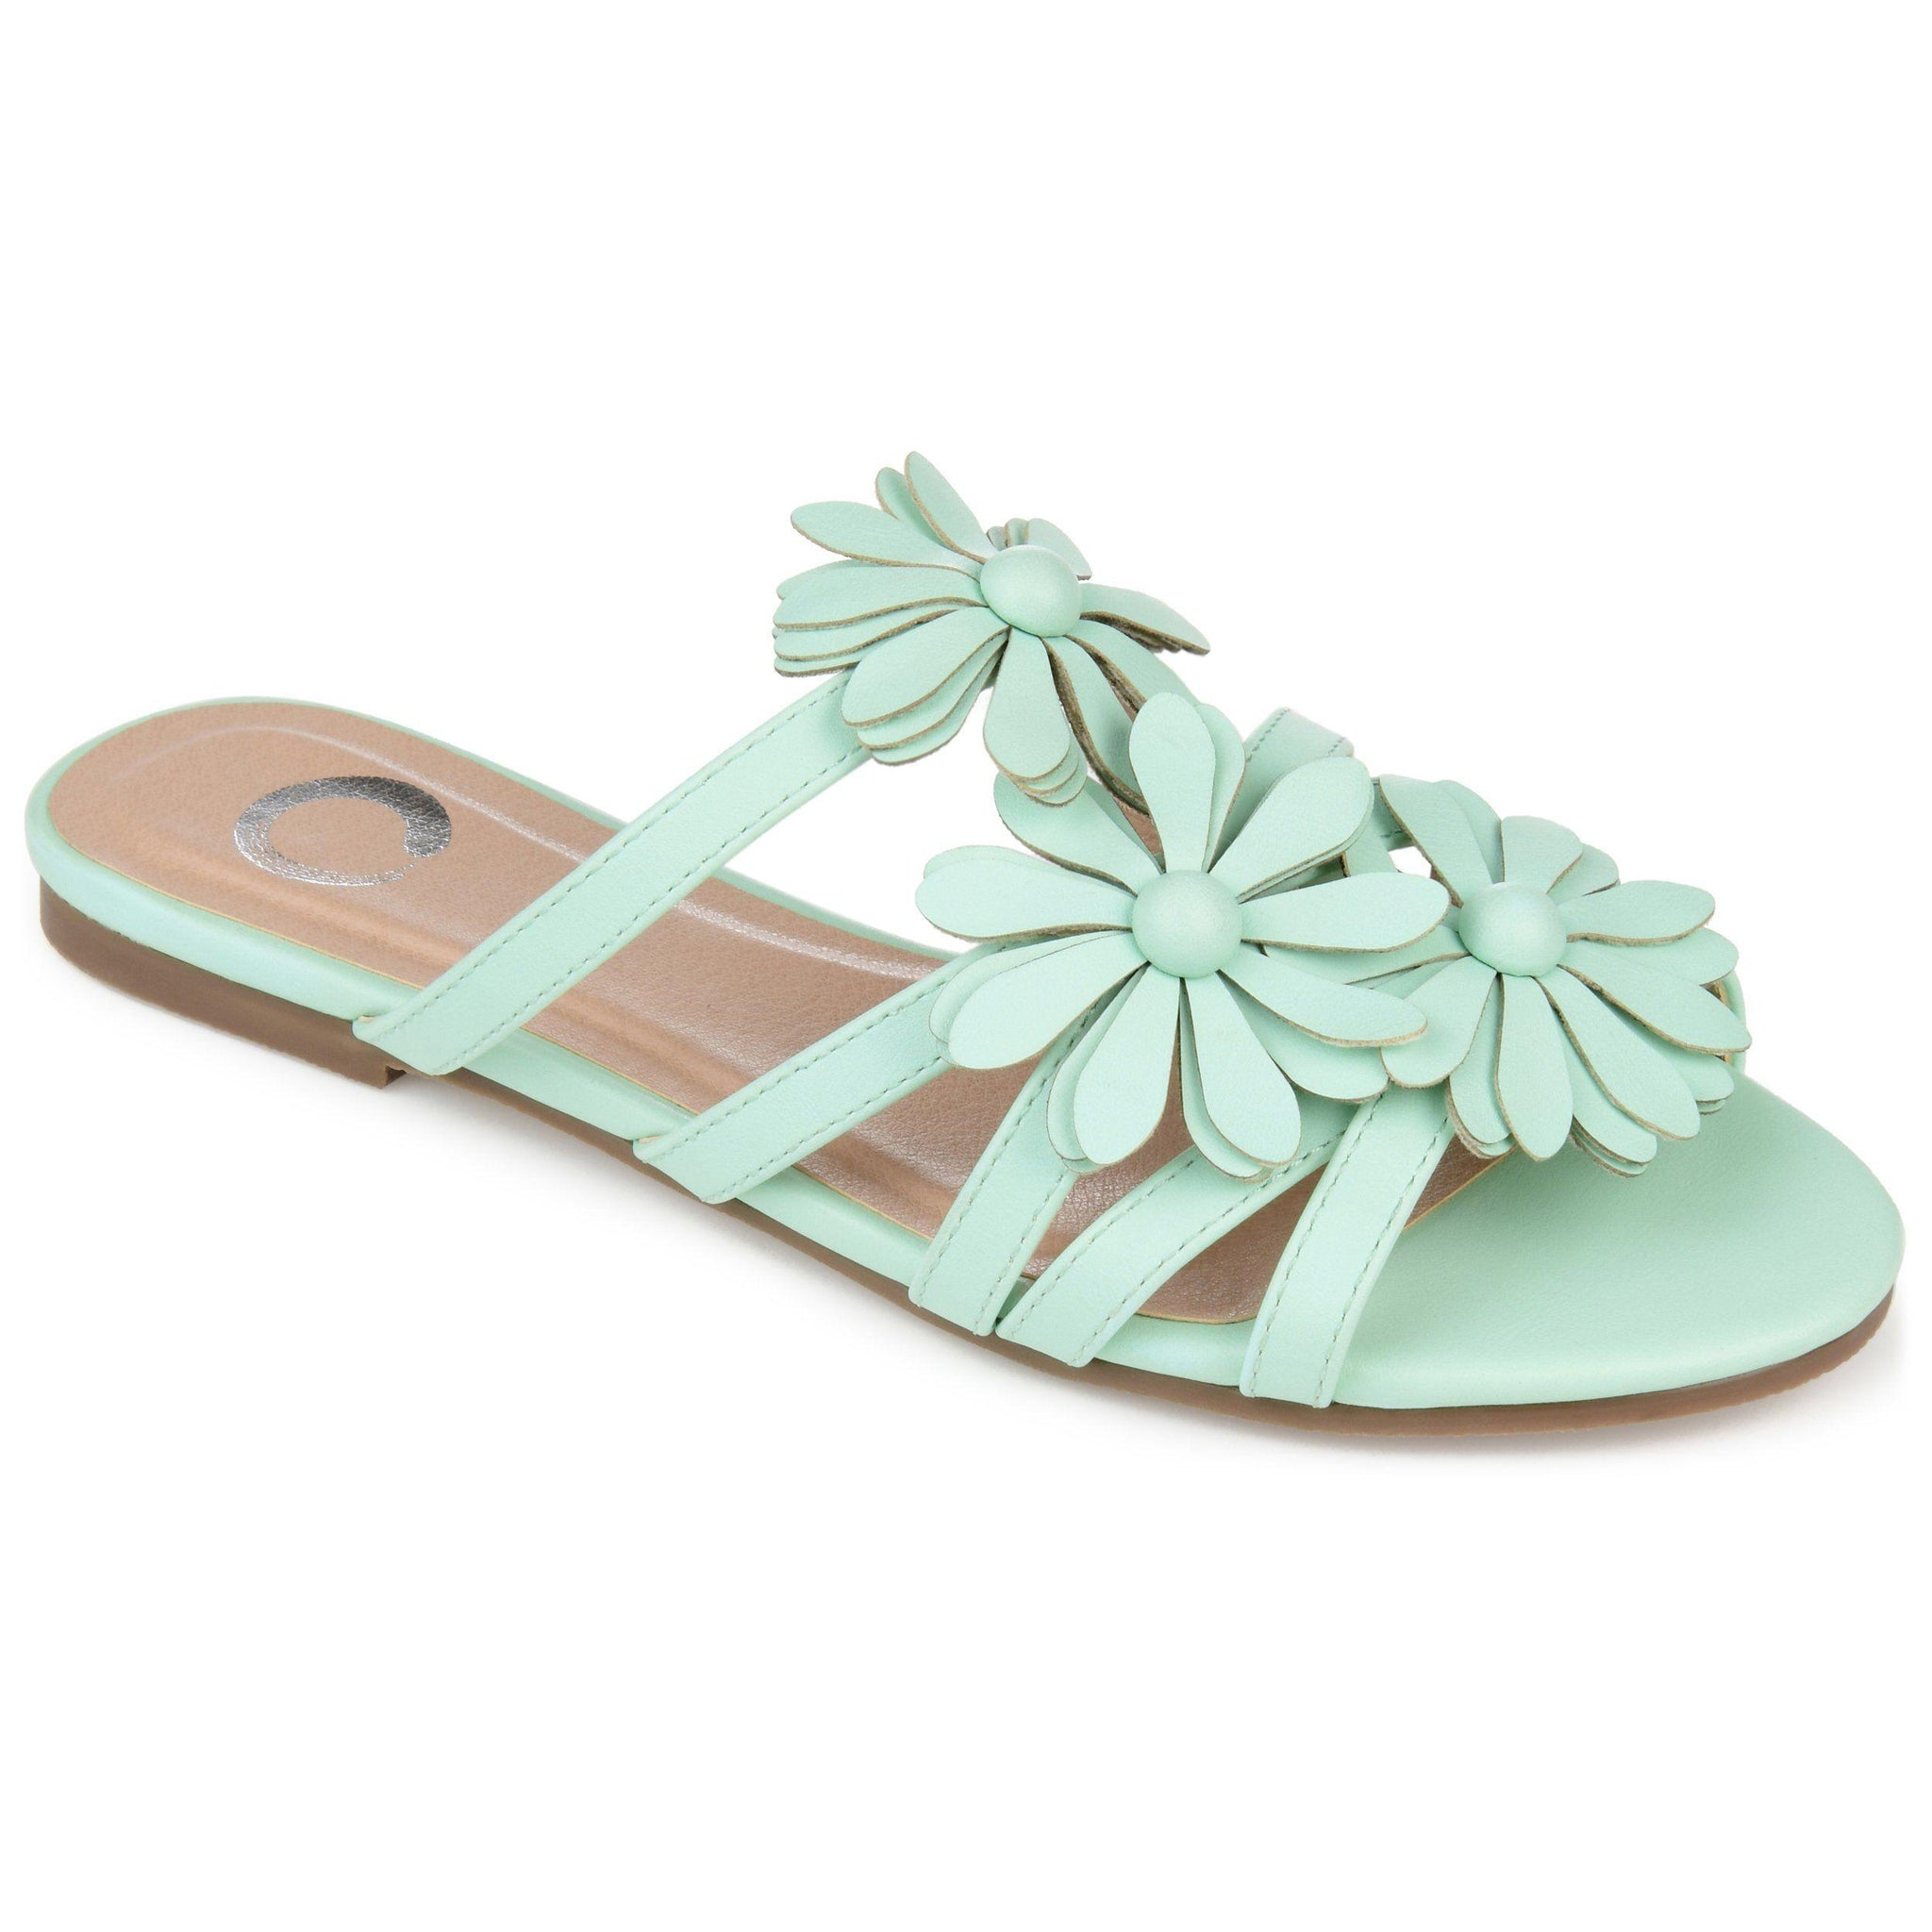 DOLLIAH SHOES Journee Collection Mint 6.5